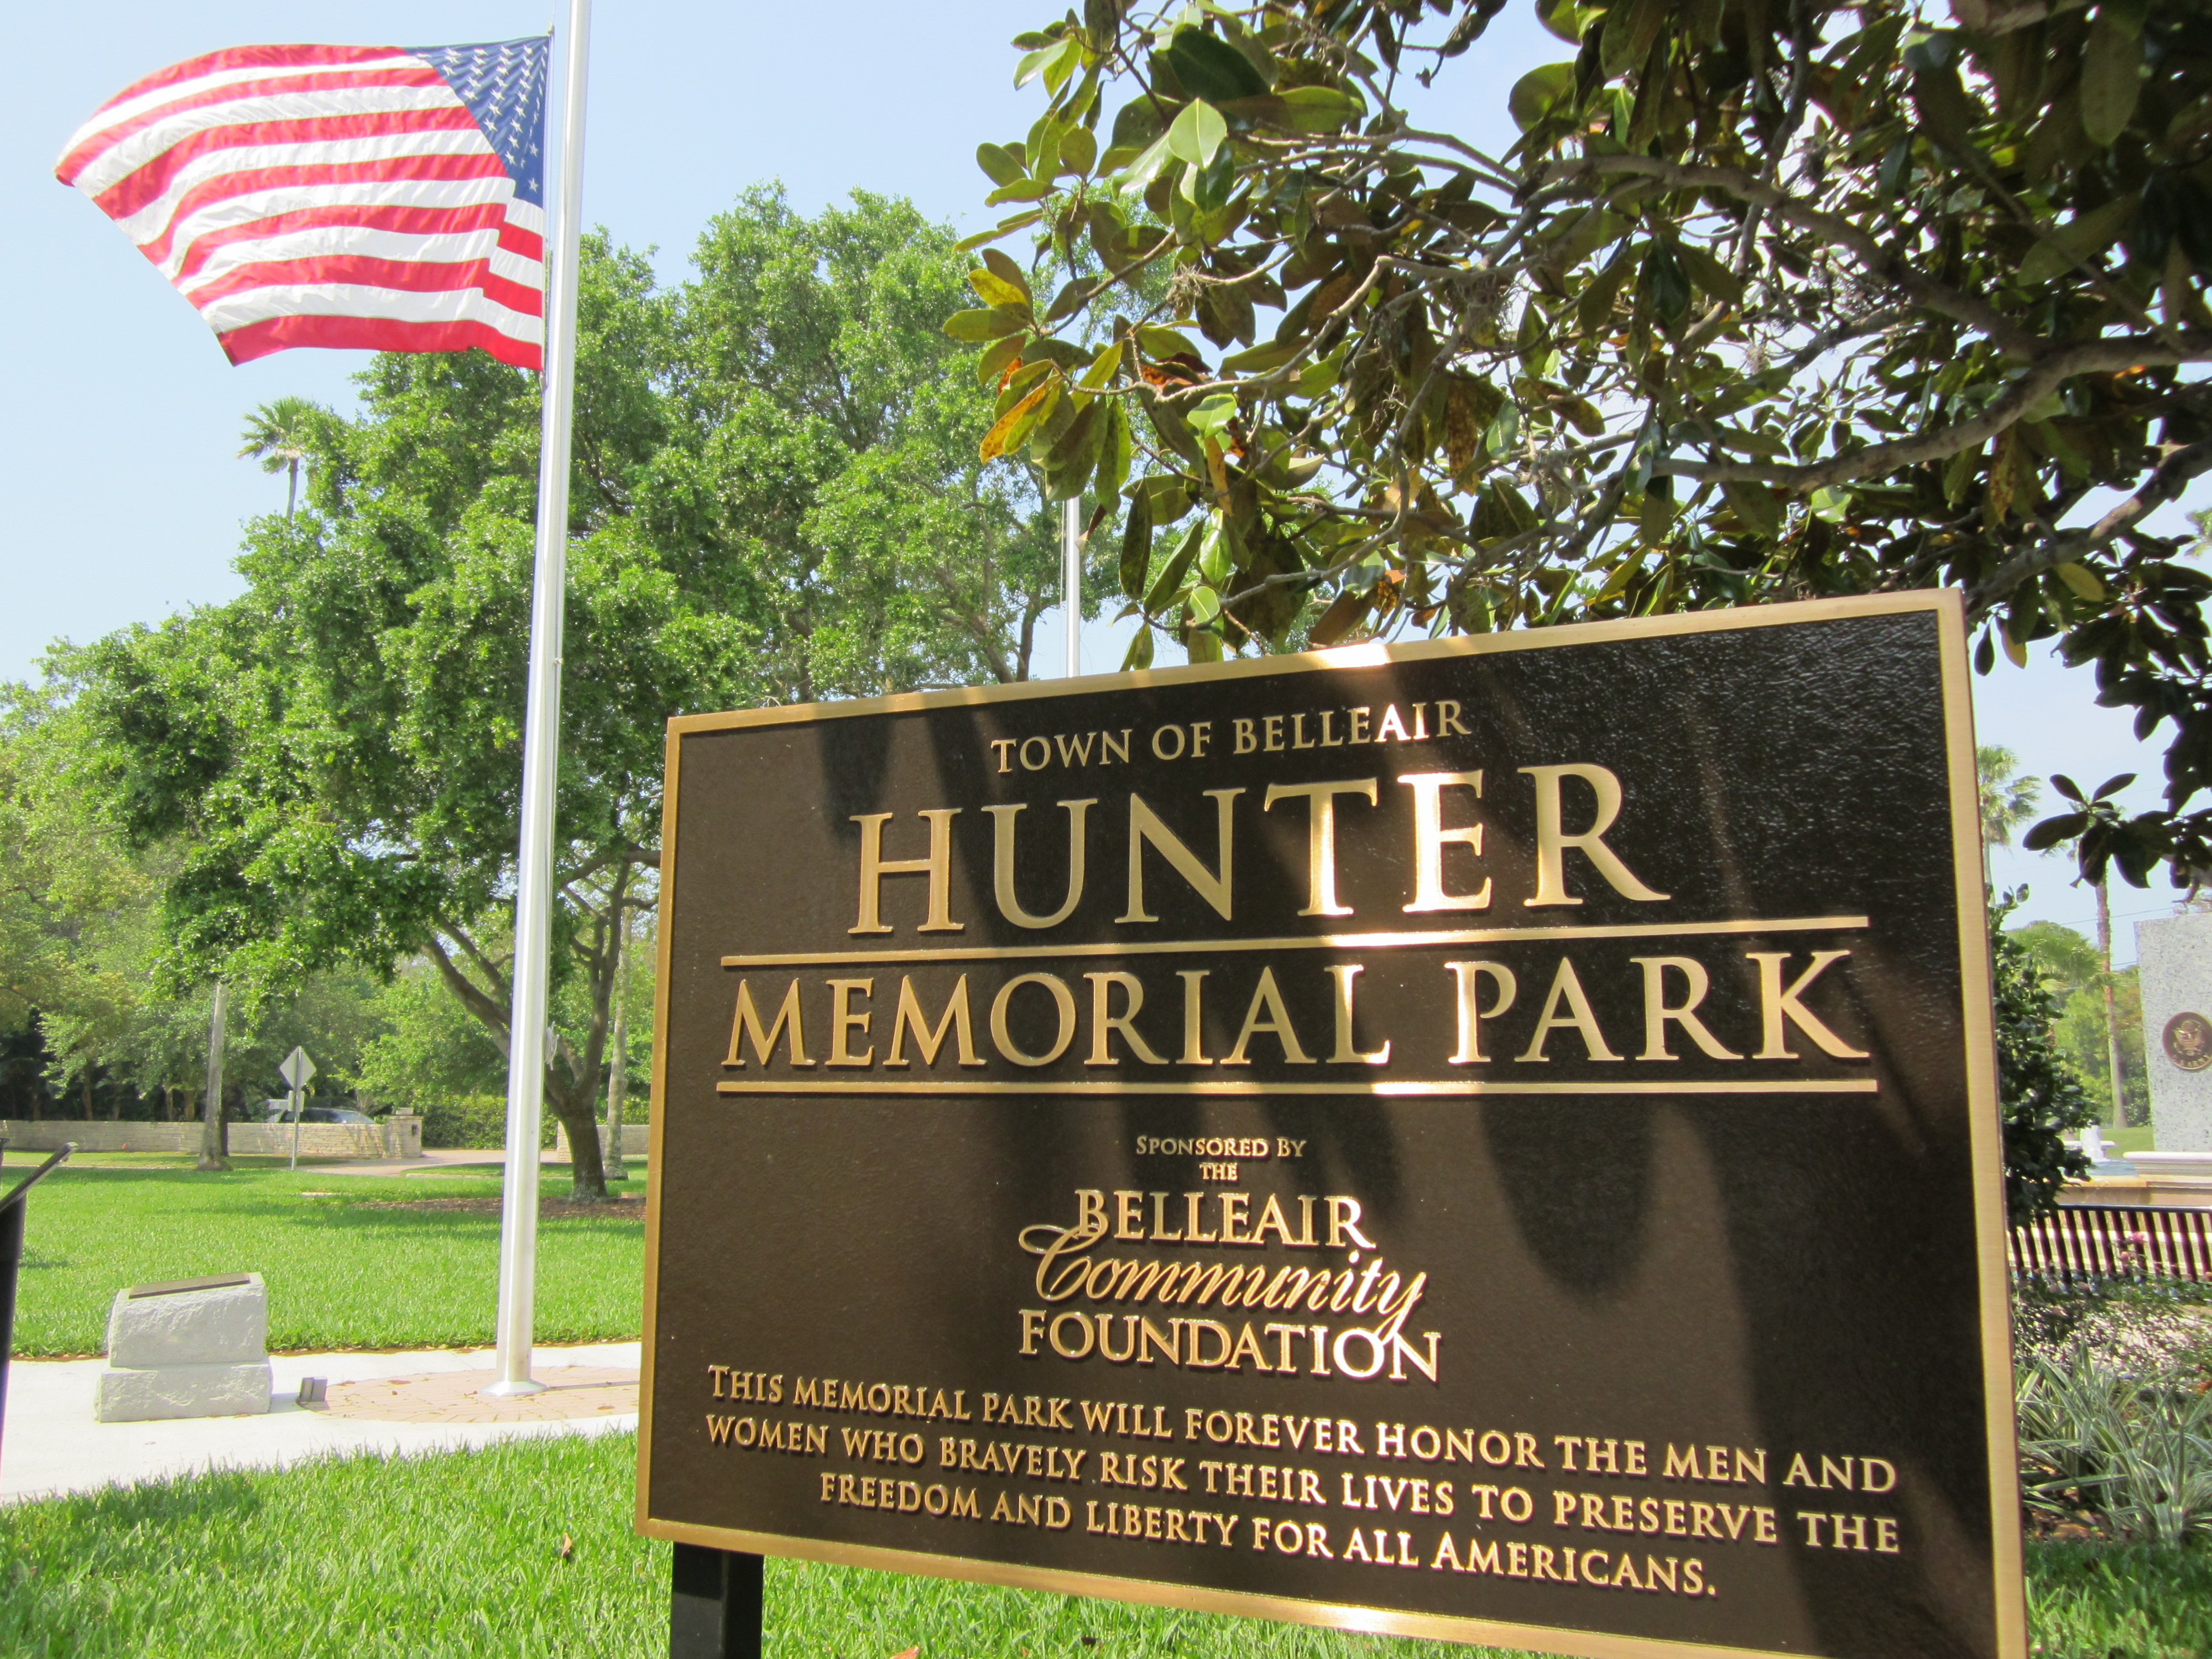 A bronze entrance sign to Hunter Memorial Park that includes the Belleair Community Foundation logo